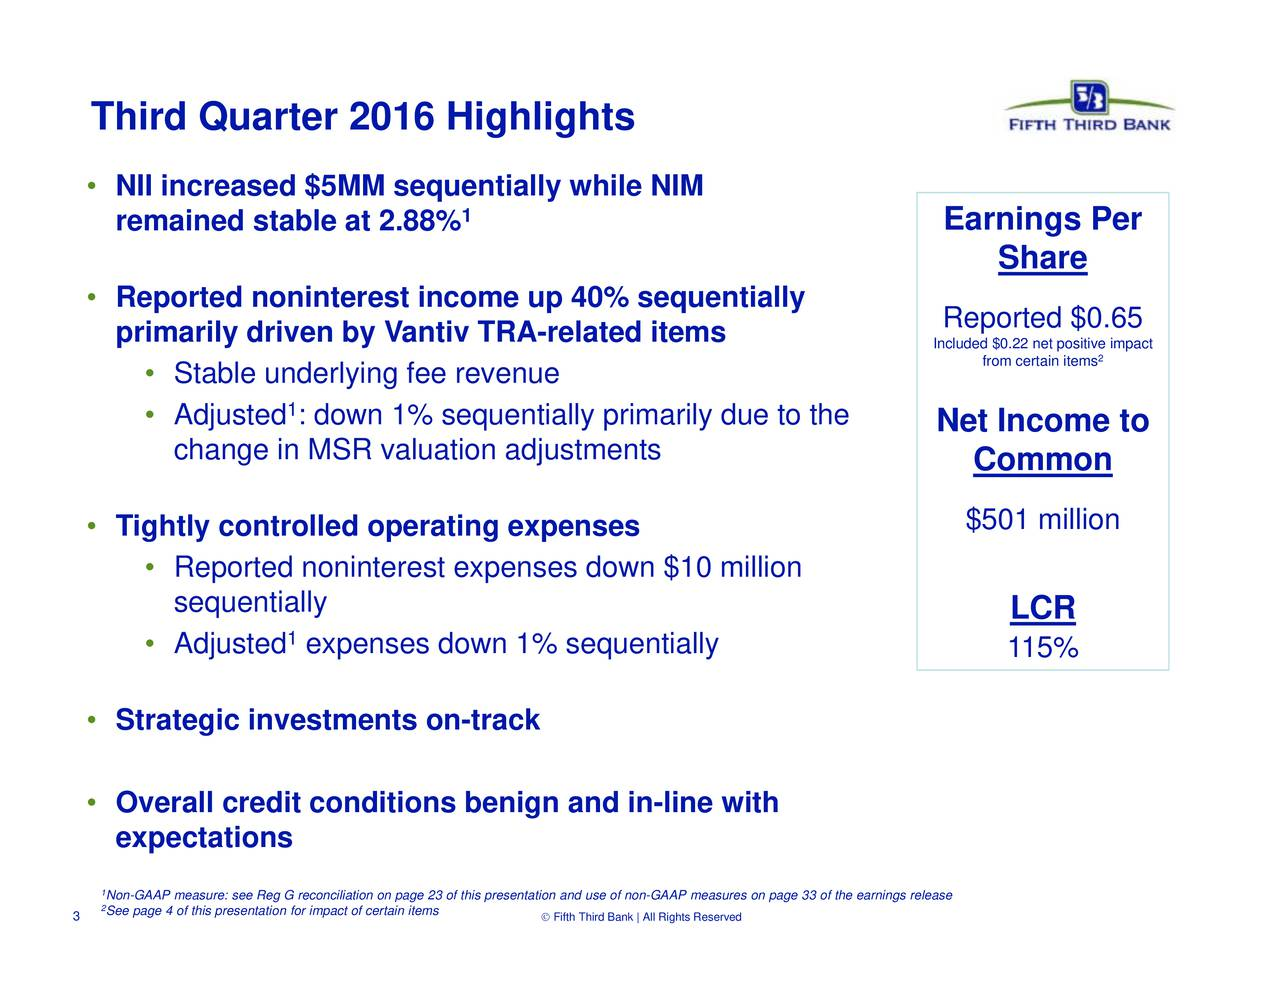 Share LCR115% from cerCommontems EarningReported $0.65 $501 million Included $0.22 net positive impact ngs release ifth Third Bank | All Rights Reserved presentation and use of non-GAAP measures on page 33 of the earni 1 1 down 1% sequent1ally primarily due to theally StaAbejuntderlying fee revenuetareuttxpentses down $10 million NIIrncreiaepri$abrlyonrn.ennbtaVlcwthvleRAI-0%laeeqit12neageathsrRaiornefc ThirdQuarter2016 Highlights    3